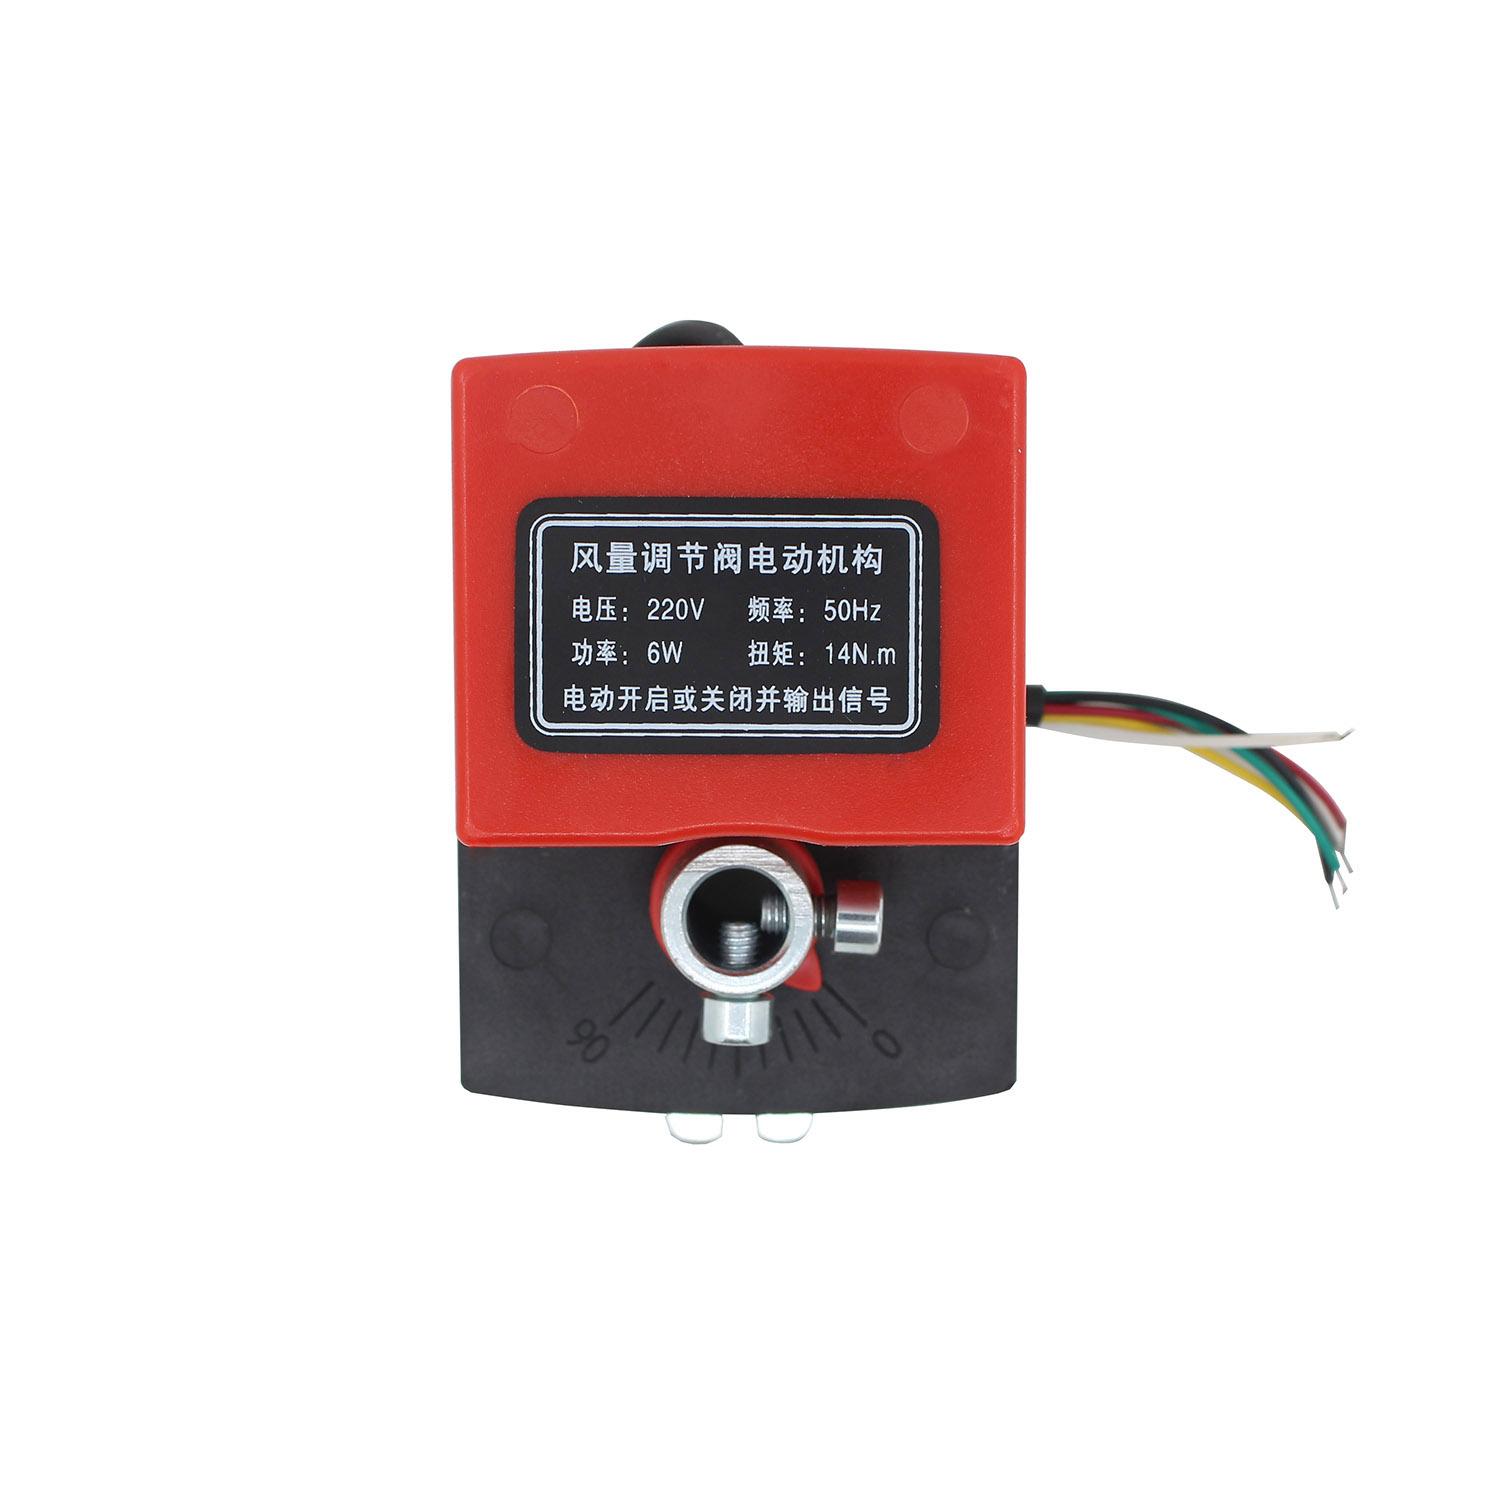 5 Air Damper Acutoator With 5 Position Controller 220 V Switch 60s Home Appliance Parts 125mm Regulating Air Damper Seal Type